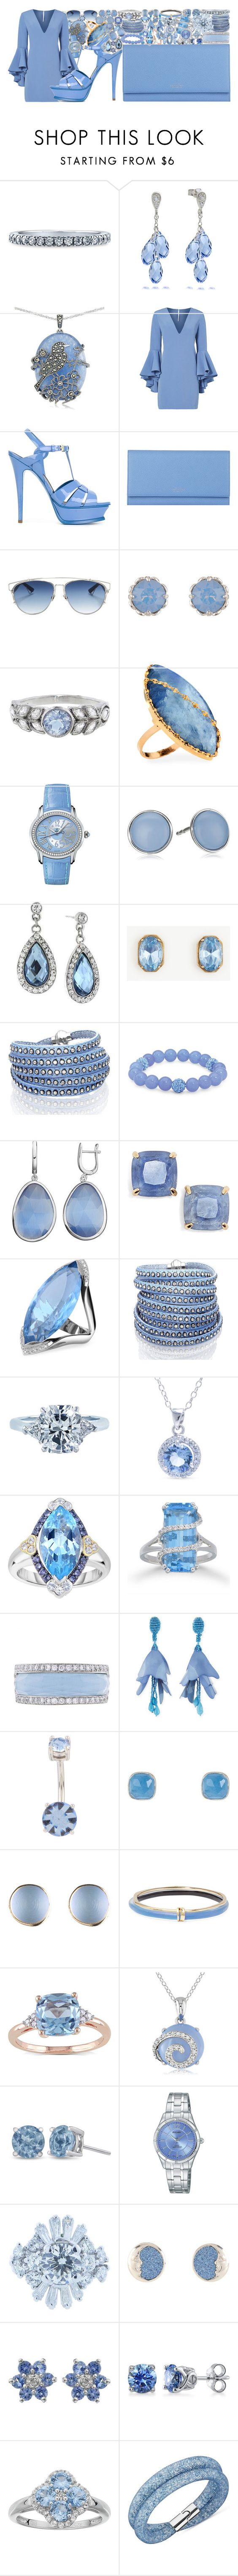 """Untitled #3815"" by brooke-evans12 ❤ liked on Polyvore featuring BERRICLE, Lord & Taylor, Milly, Yves Saint Laurent, Smythson, Christian Dior, Accessorize, Cathy Waterman, Lana and Audemars Piguet"